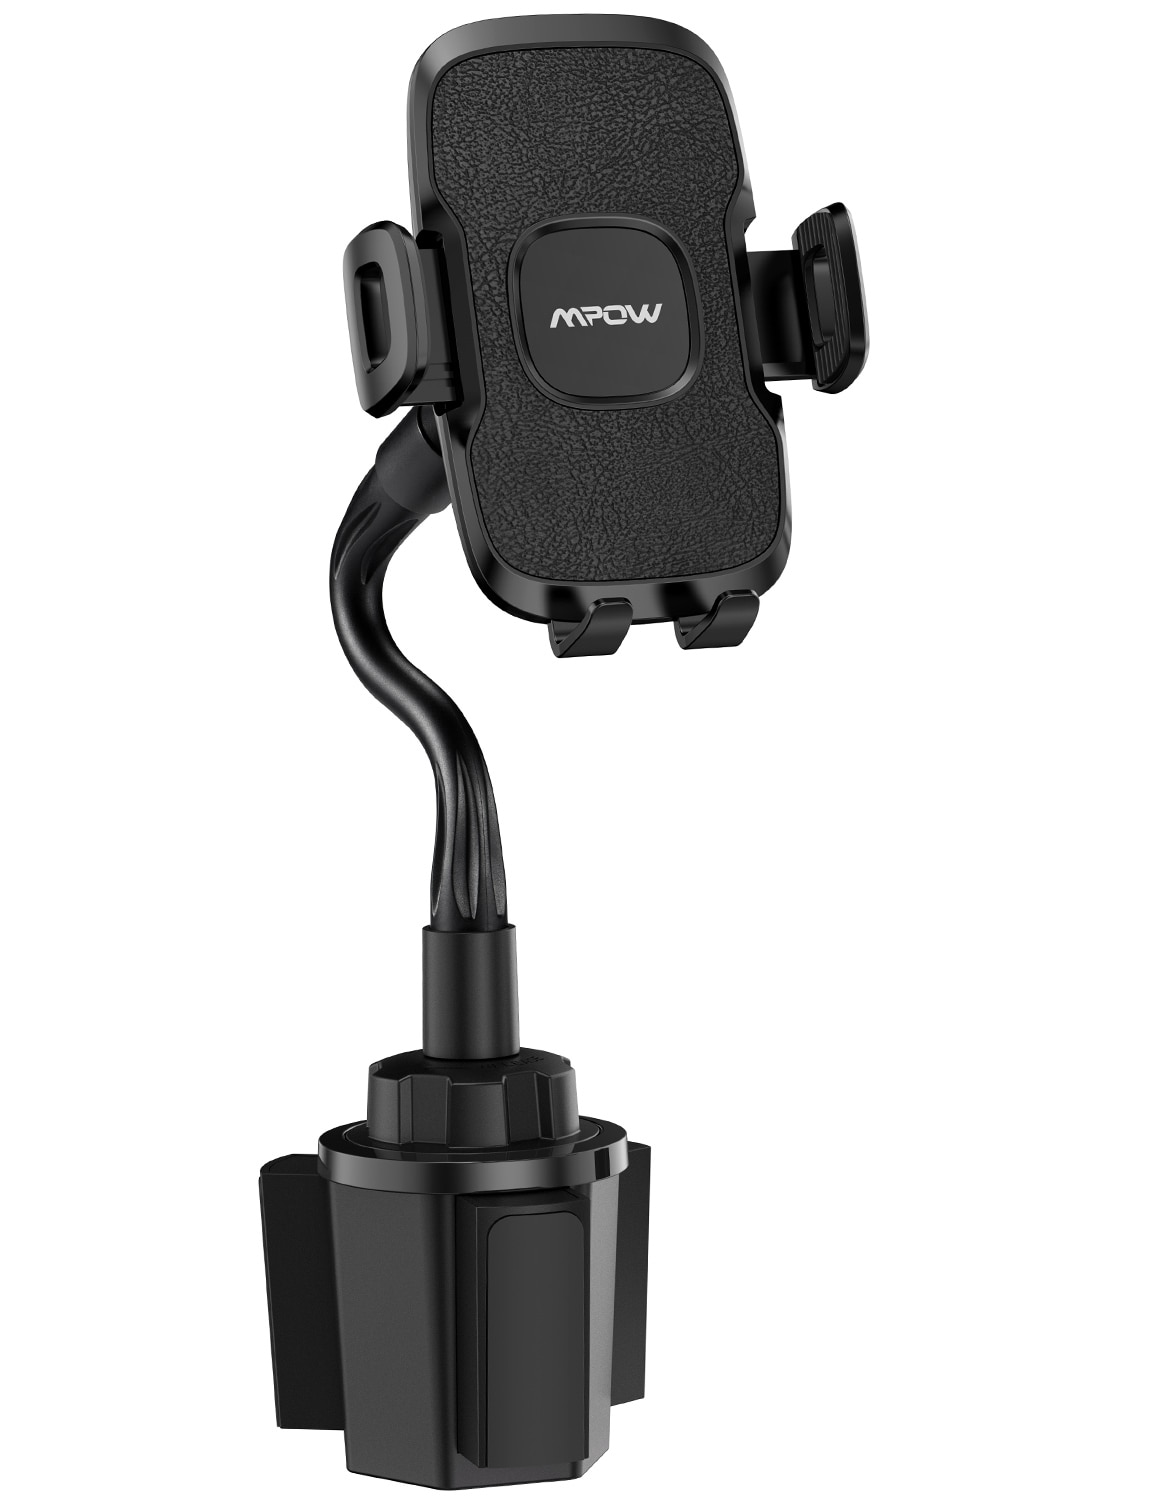 H2b70890293ec499da1a86cb96c375b89R - Mpow CA136 Car Phone Holder 360 Degree Flexible Long Arm and Adjustable Clamp Universal Phone Cradle Mount for For iPhone 12 XS